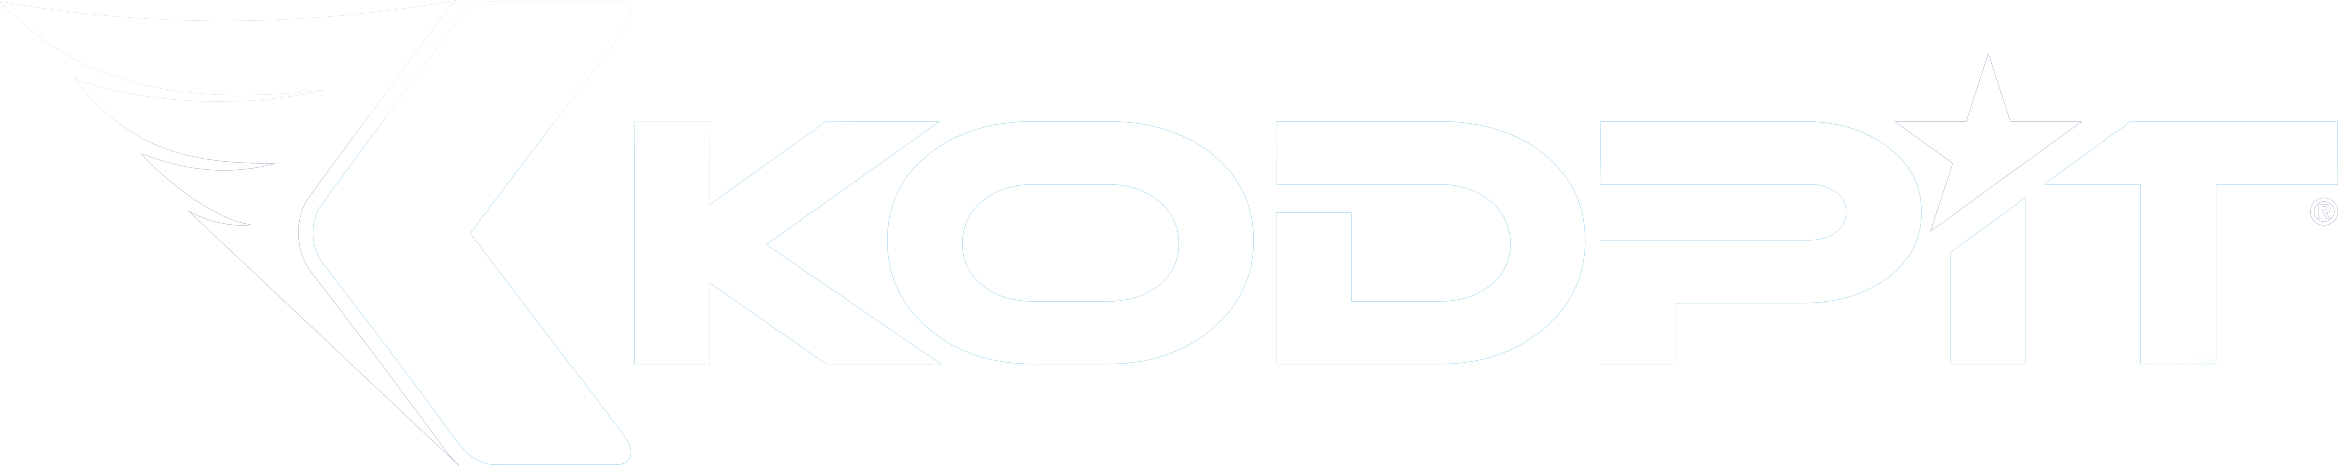 Kodpit Teknoloji A.S. - A software development company focused on mobile applications, AR/VR apps and web based softwares.